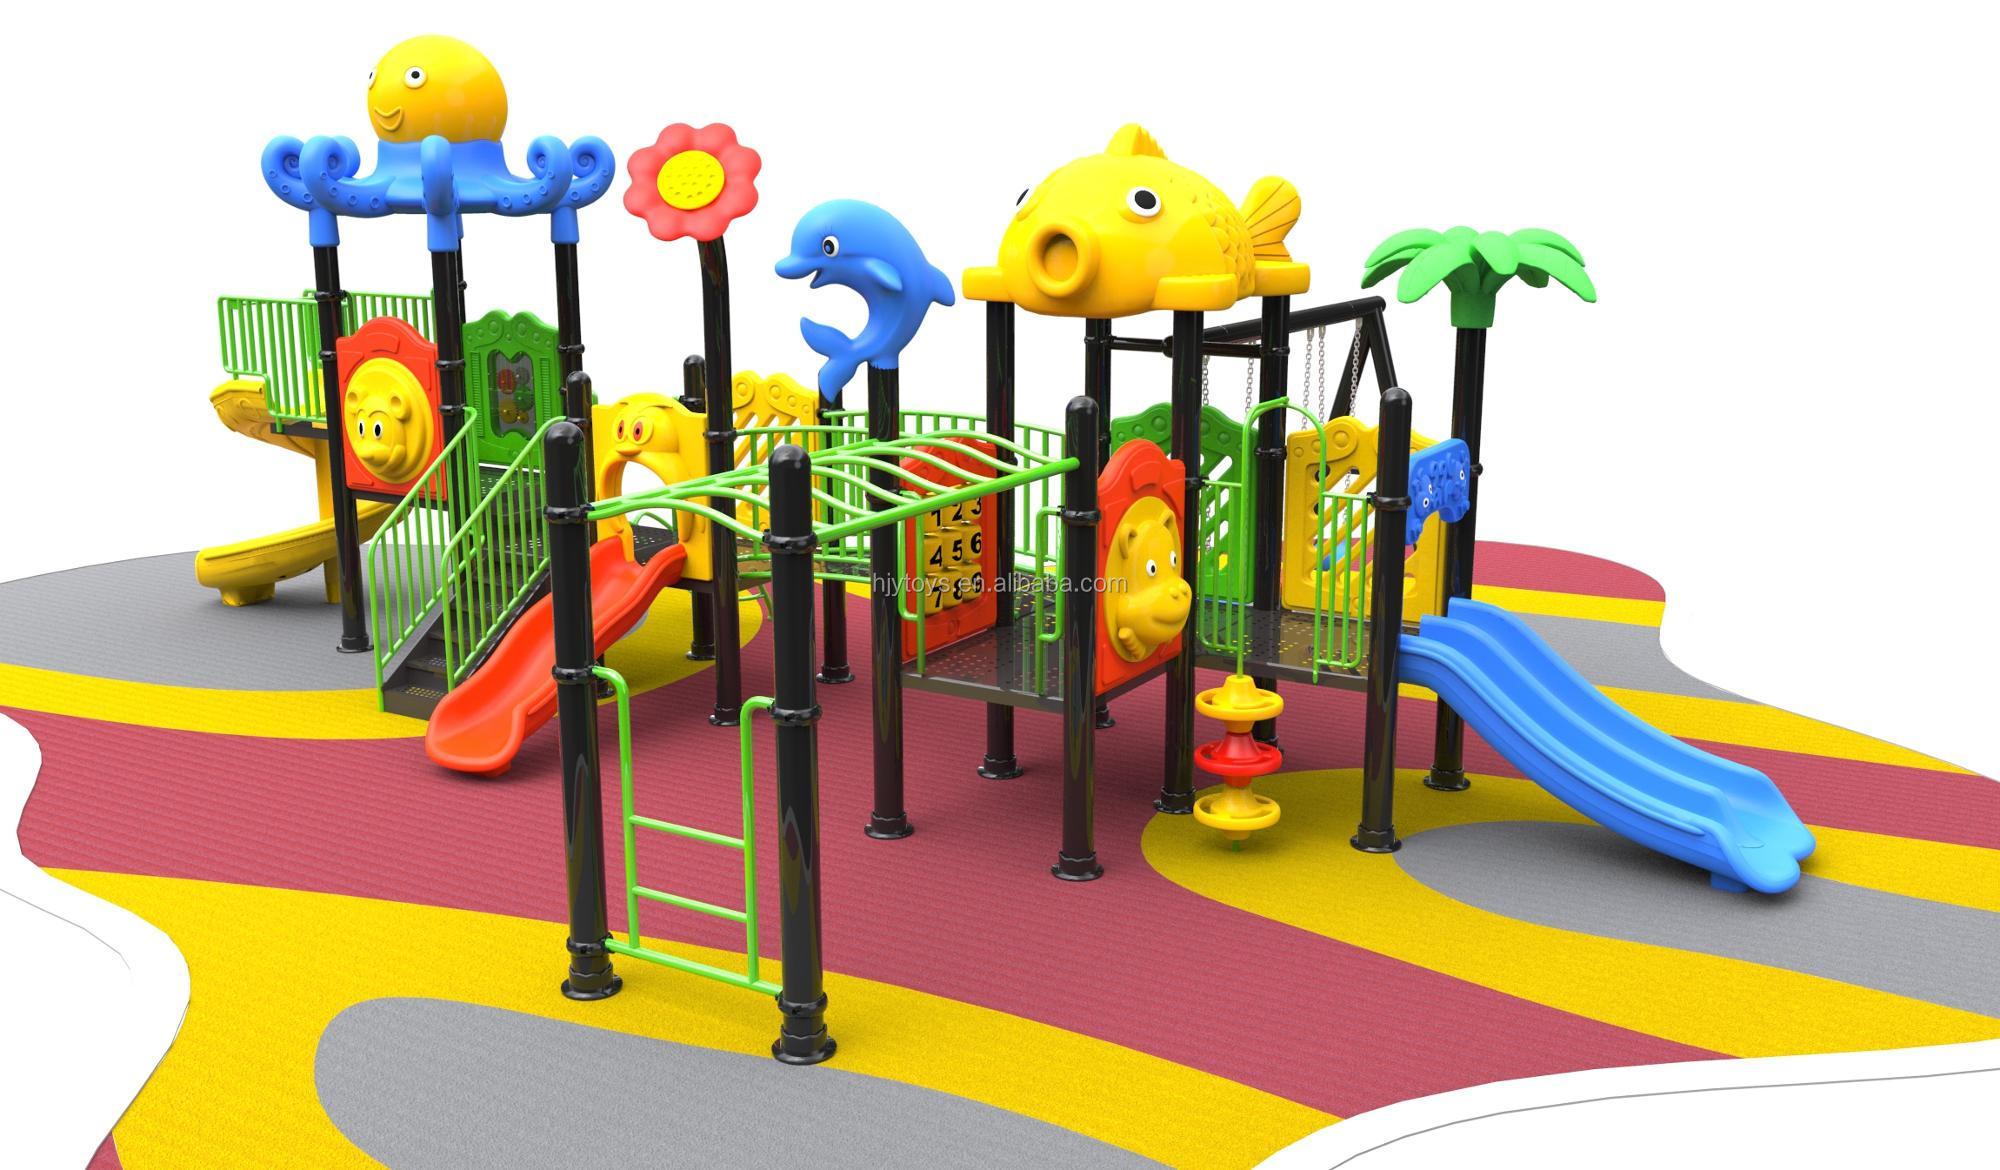 Small outdoor playground with swing sliding bucket design cheap price safety LLDPE material for preschool